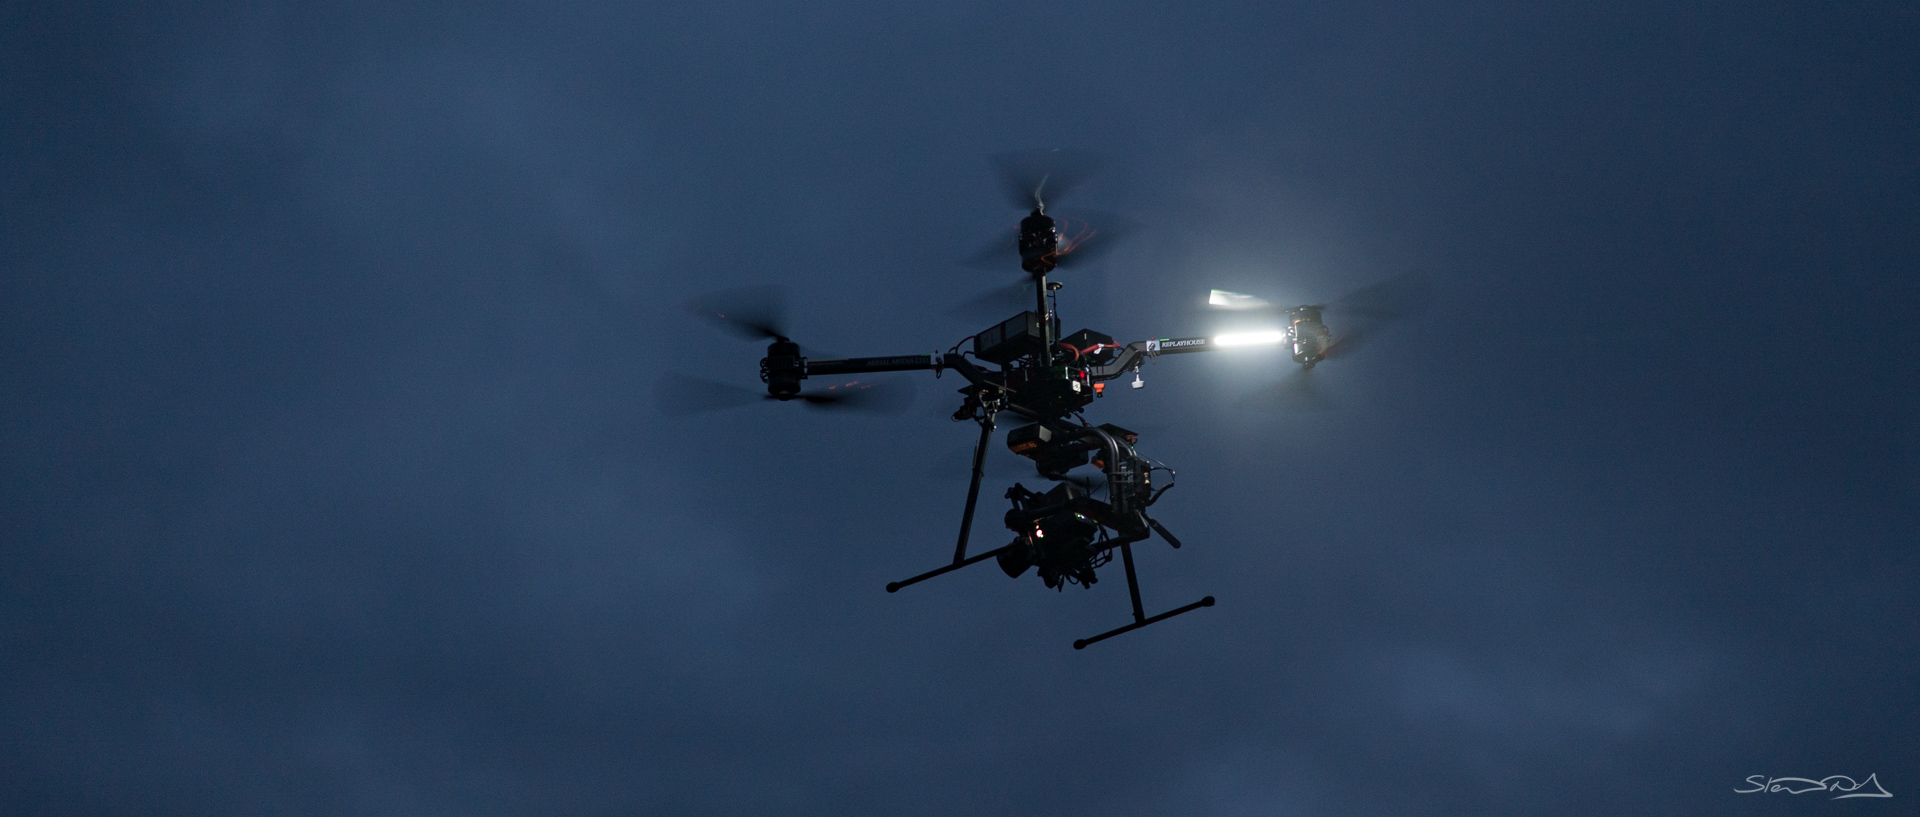 Drone flying in Backlot location